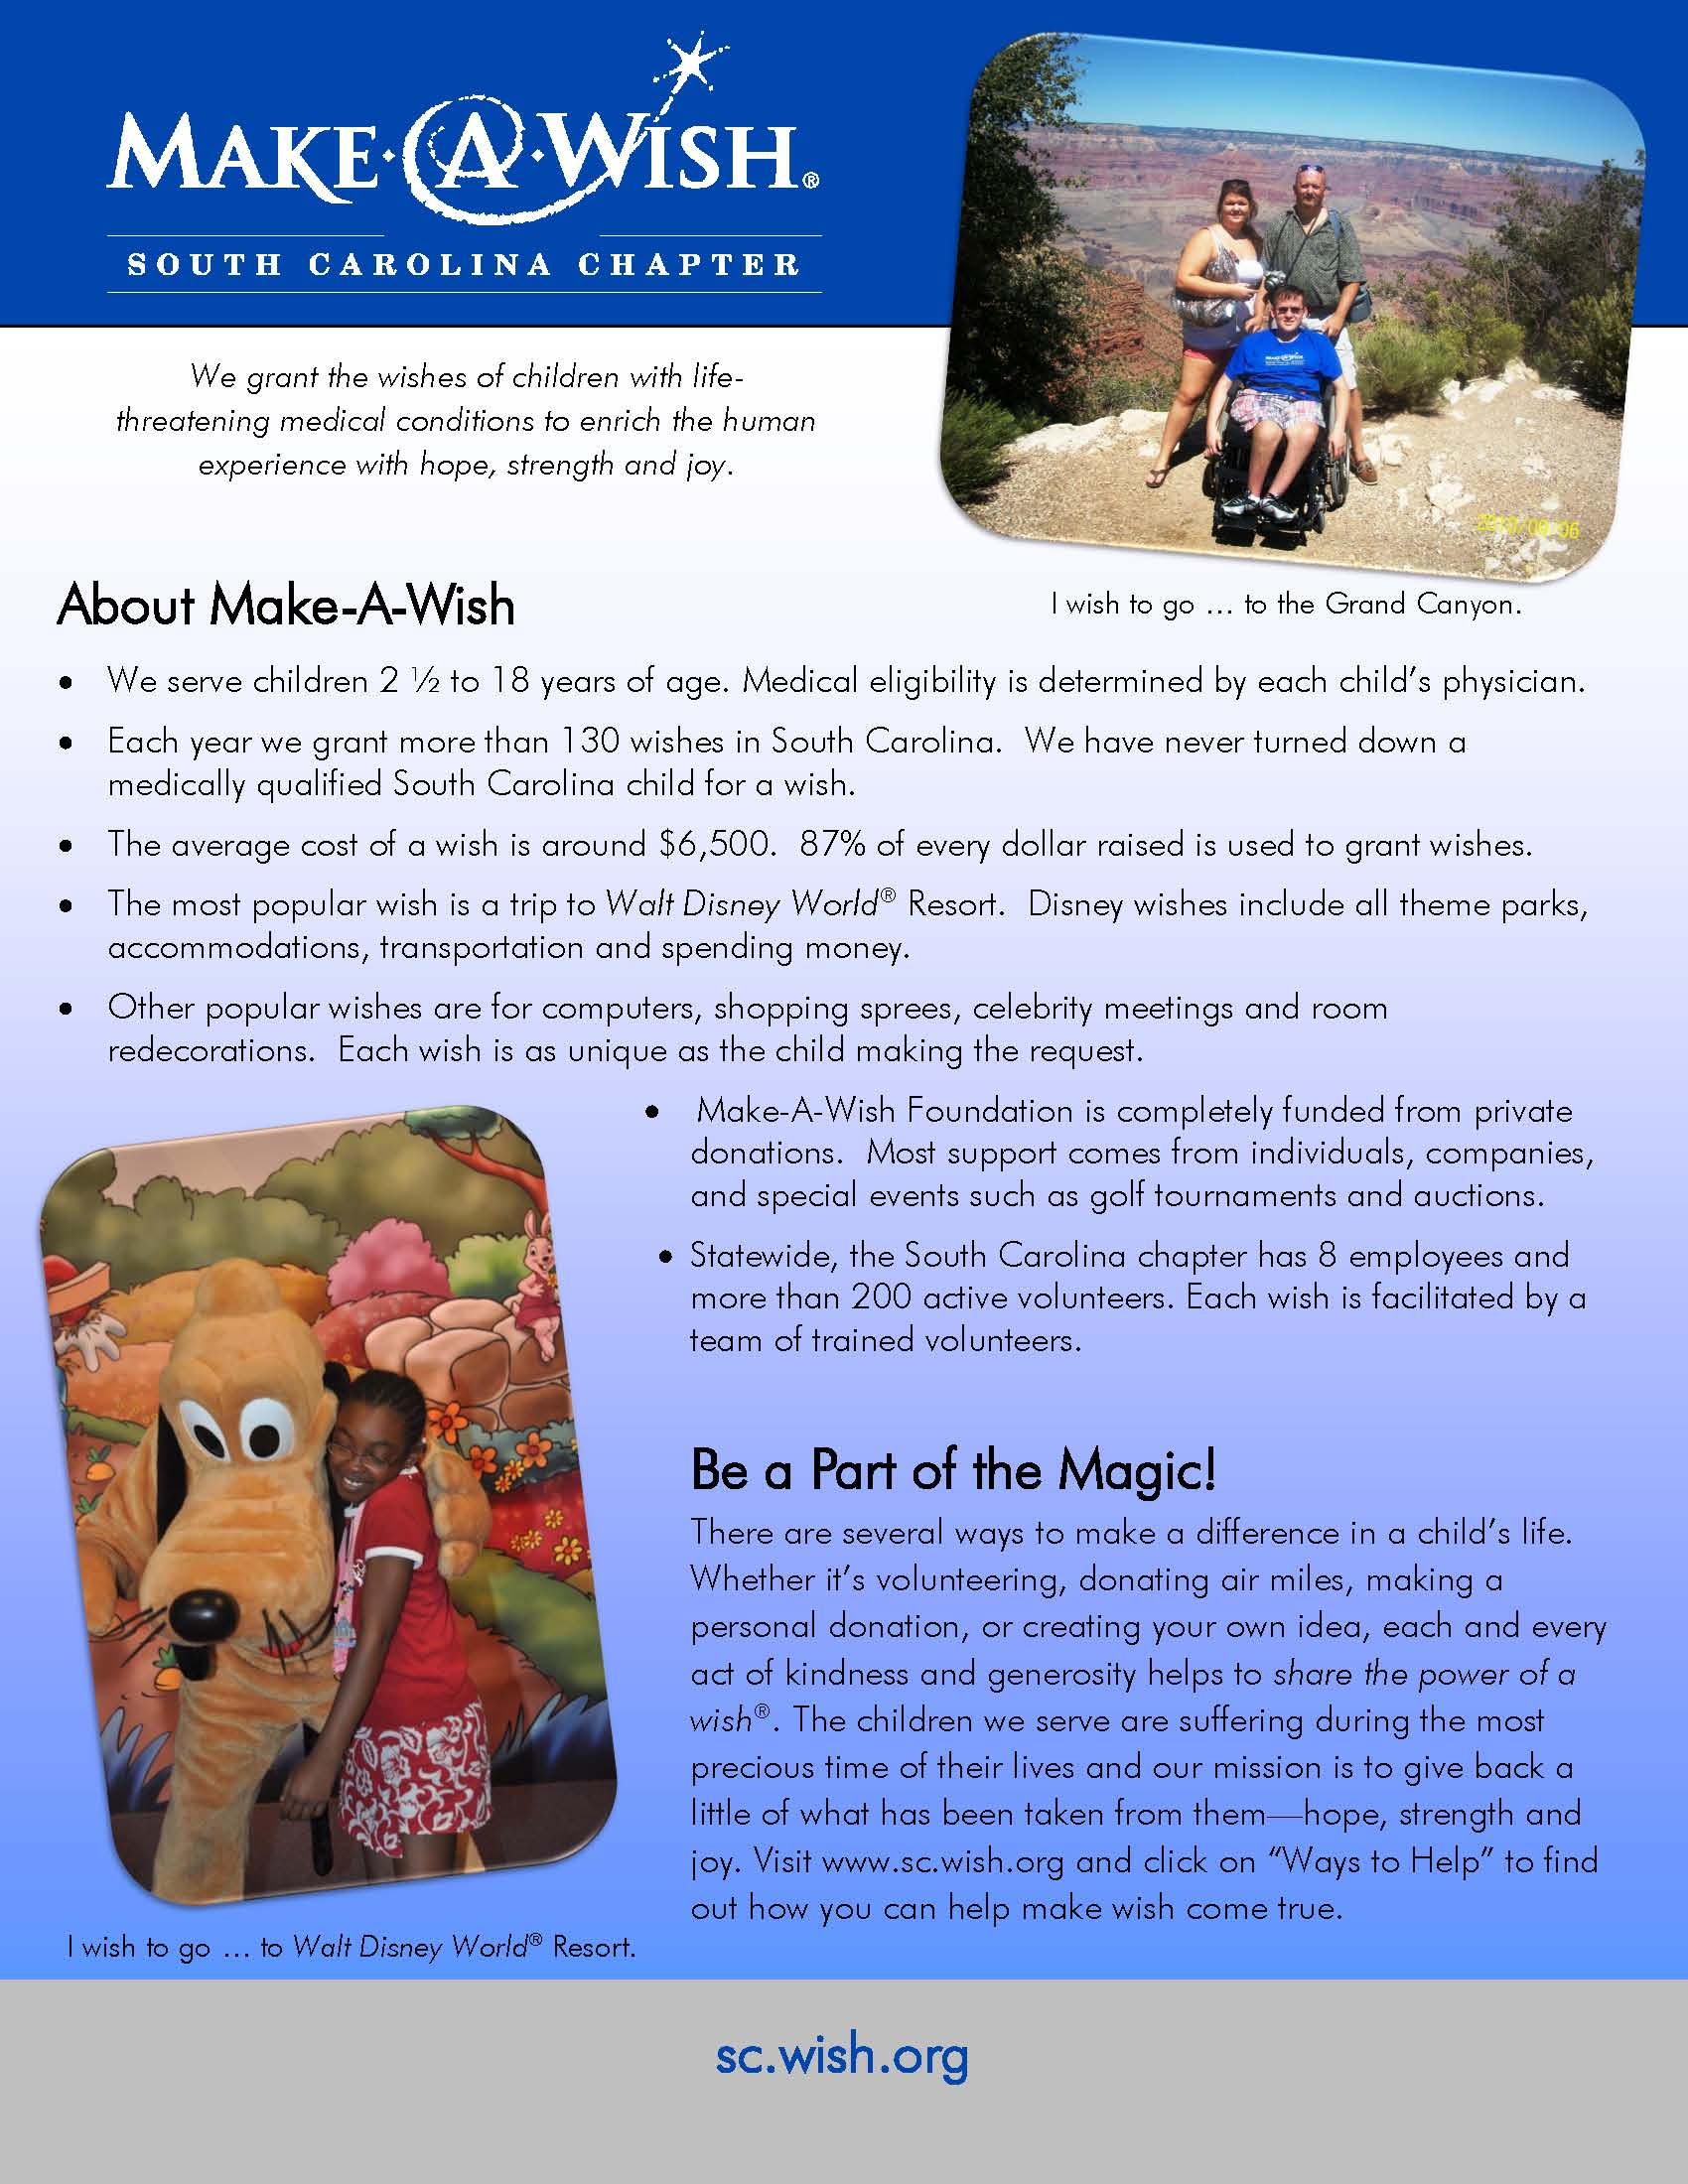 Make a Wish Informational Flyer, South Carolina